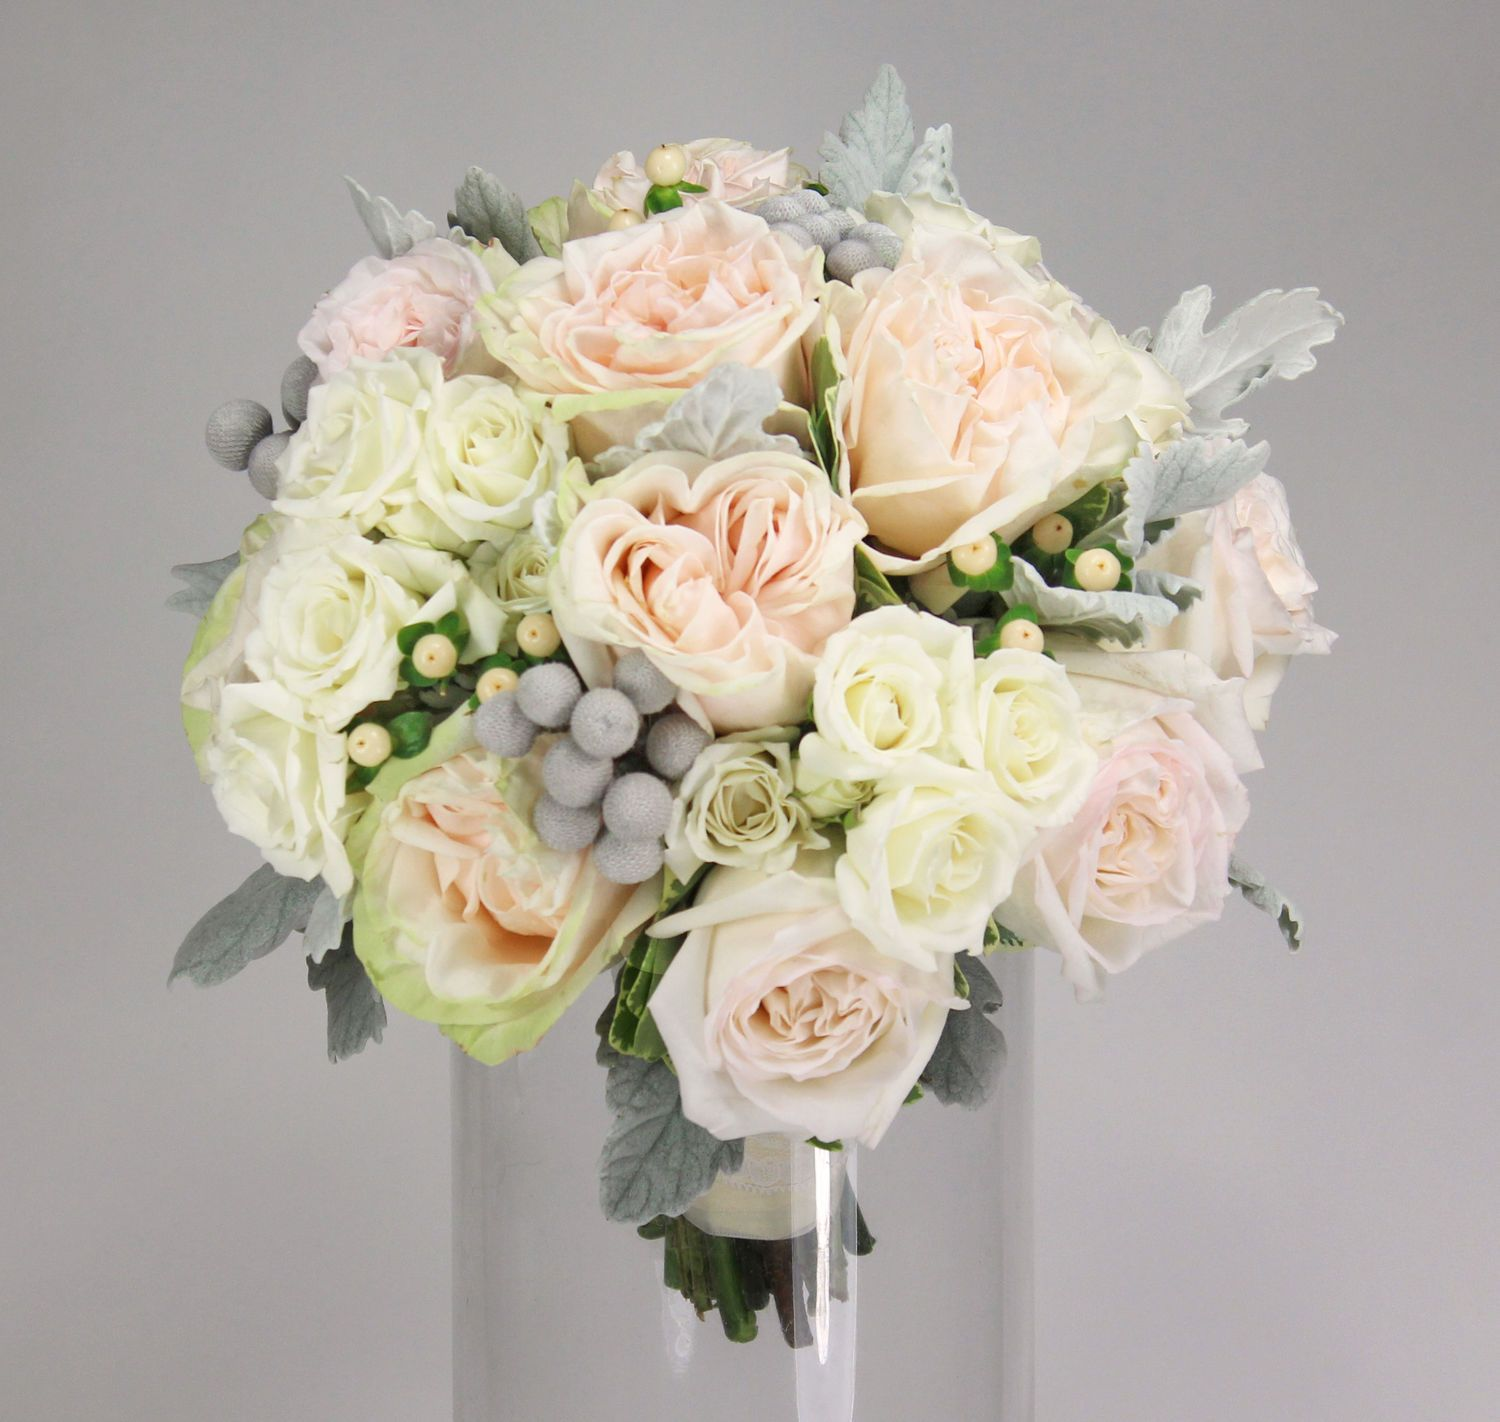 roses berries blush garden roses white majolica spray roses blush hypericum berries - Blush Garden Rose Bouquet